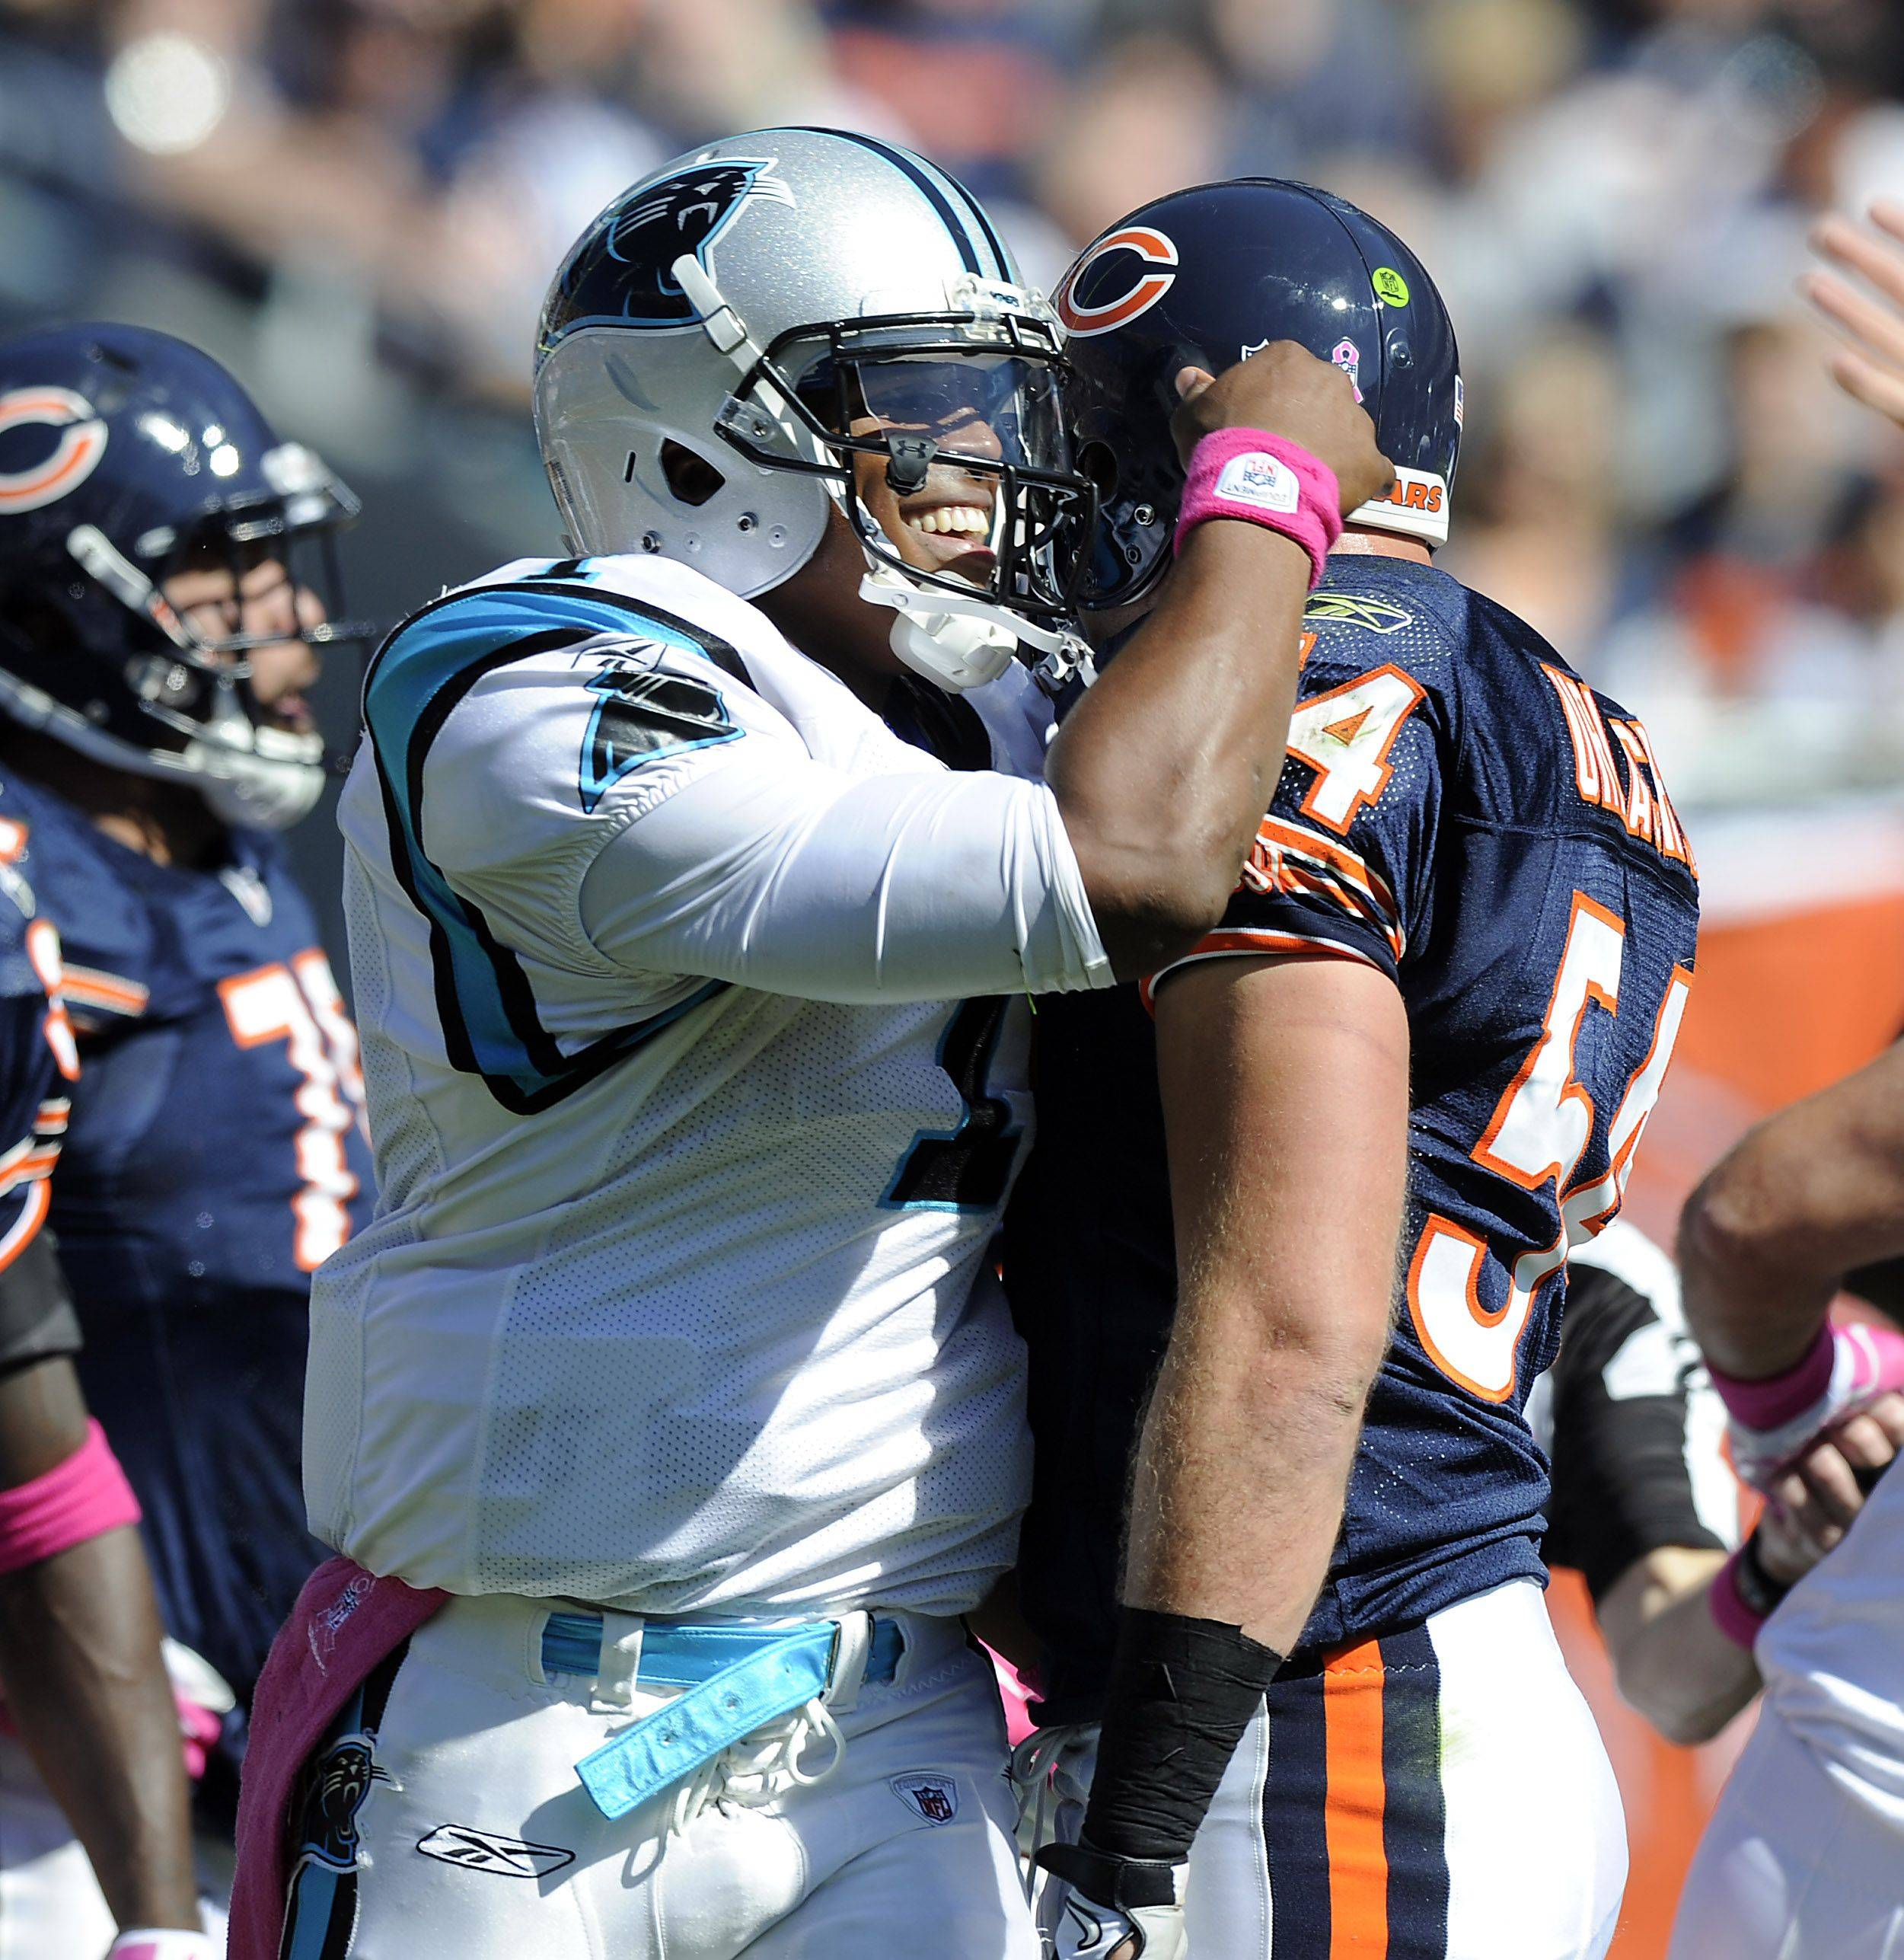 Panthers quarterback Cam Newton pats Bears Brian Urlacher after a play in the first half at Soldier Field.